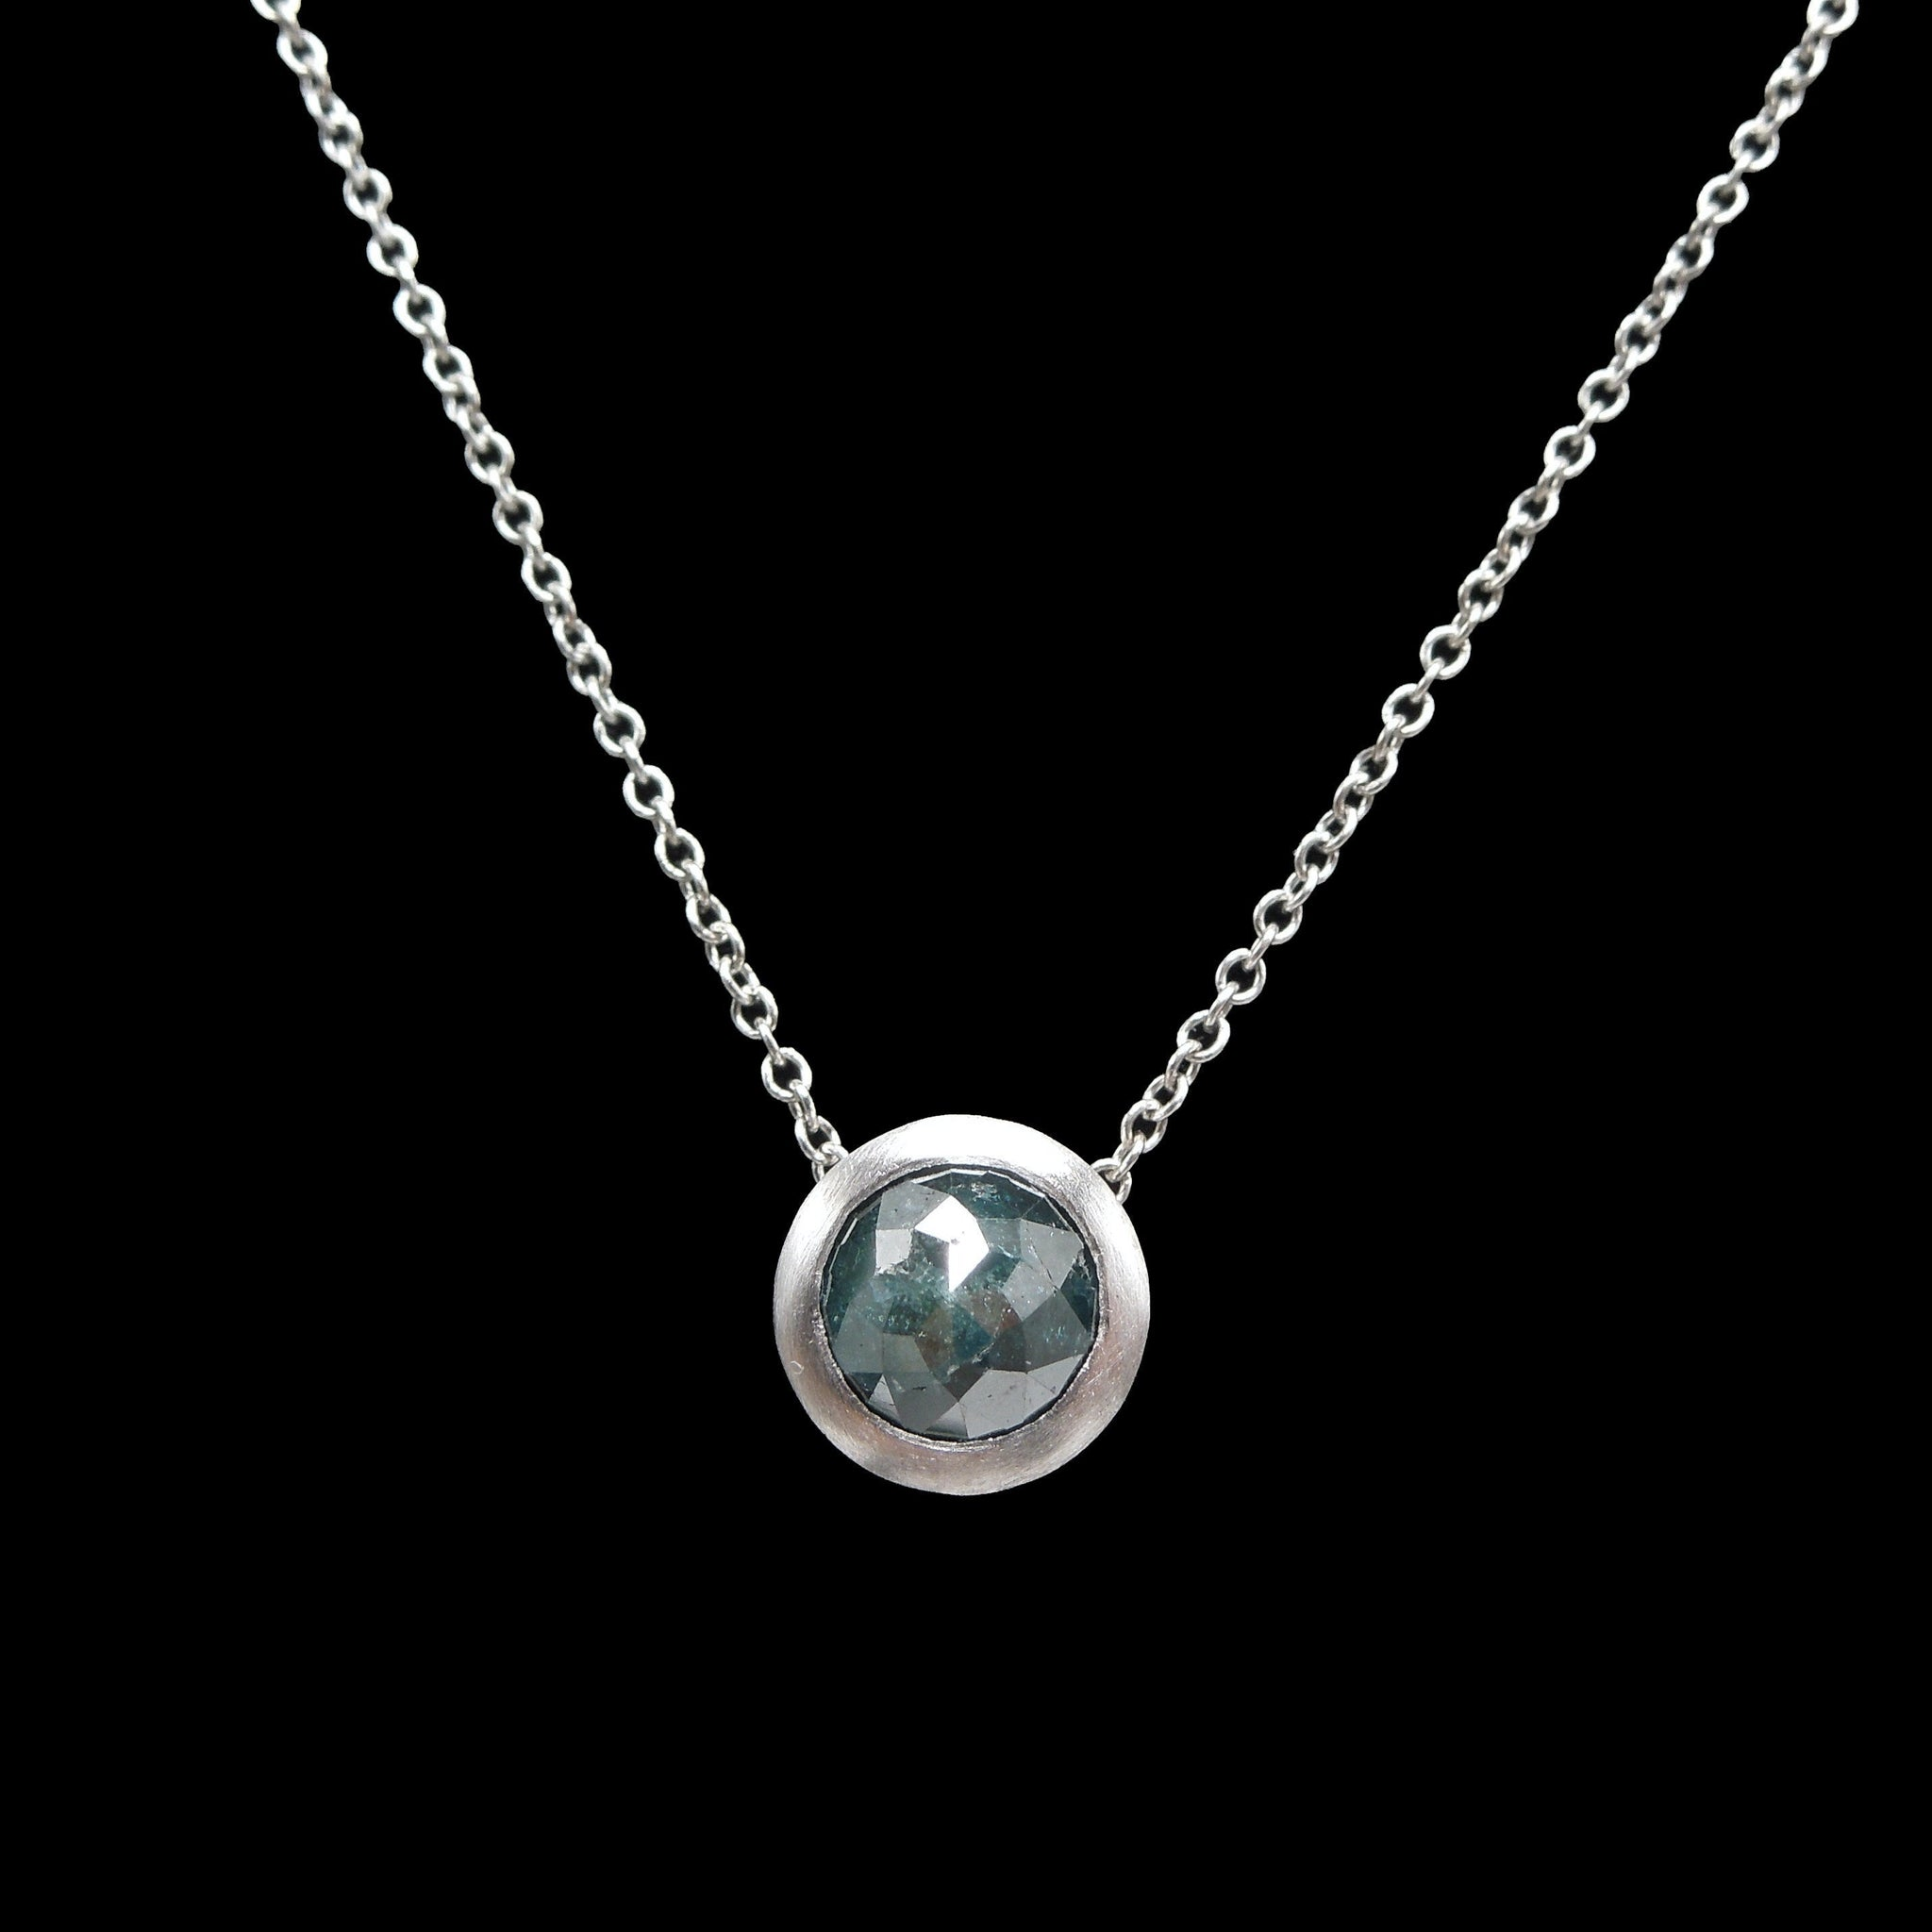 14K White Gold and Rose Cut Bluish Black Salt and Pepper Diamond Necklace